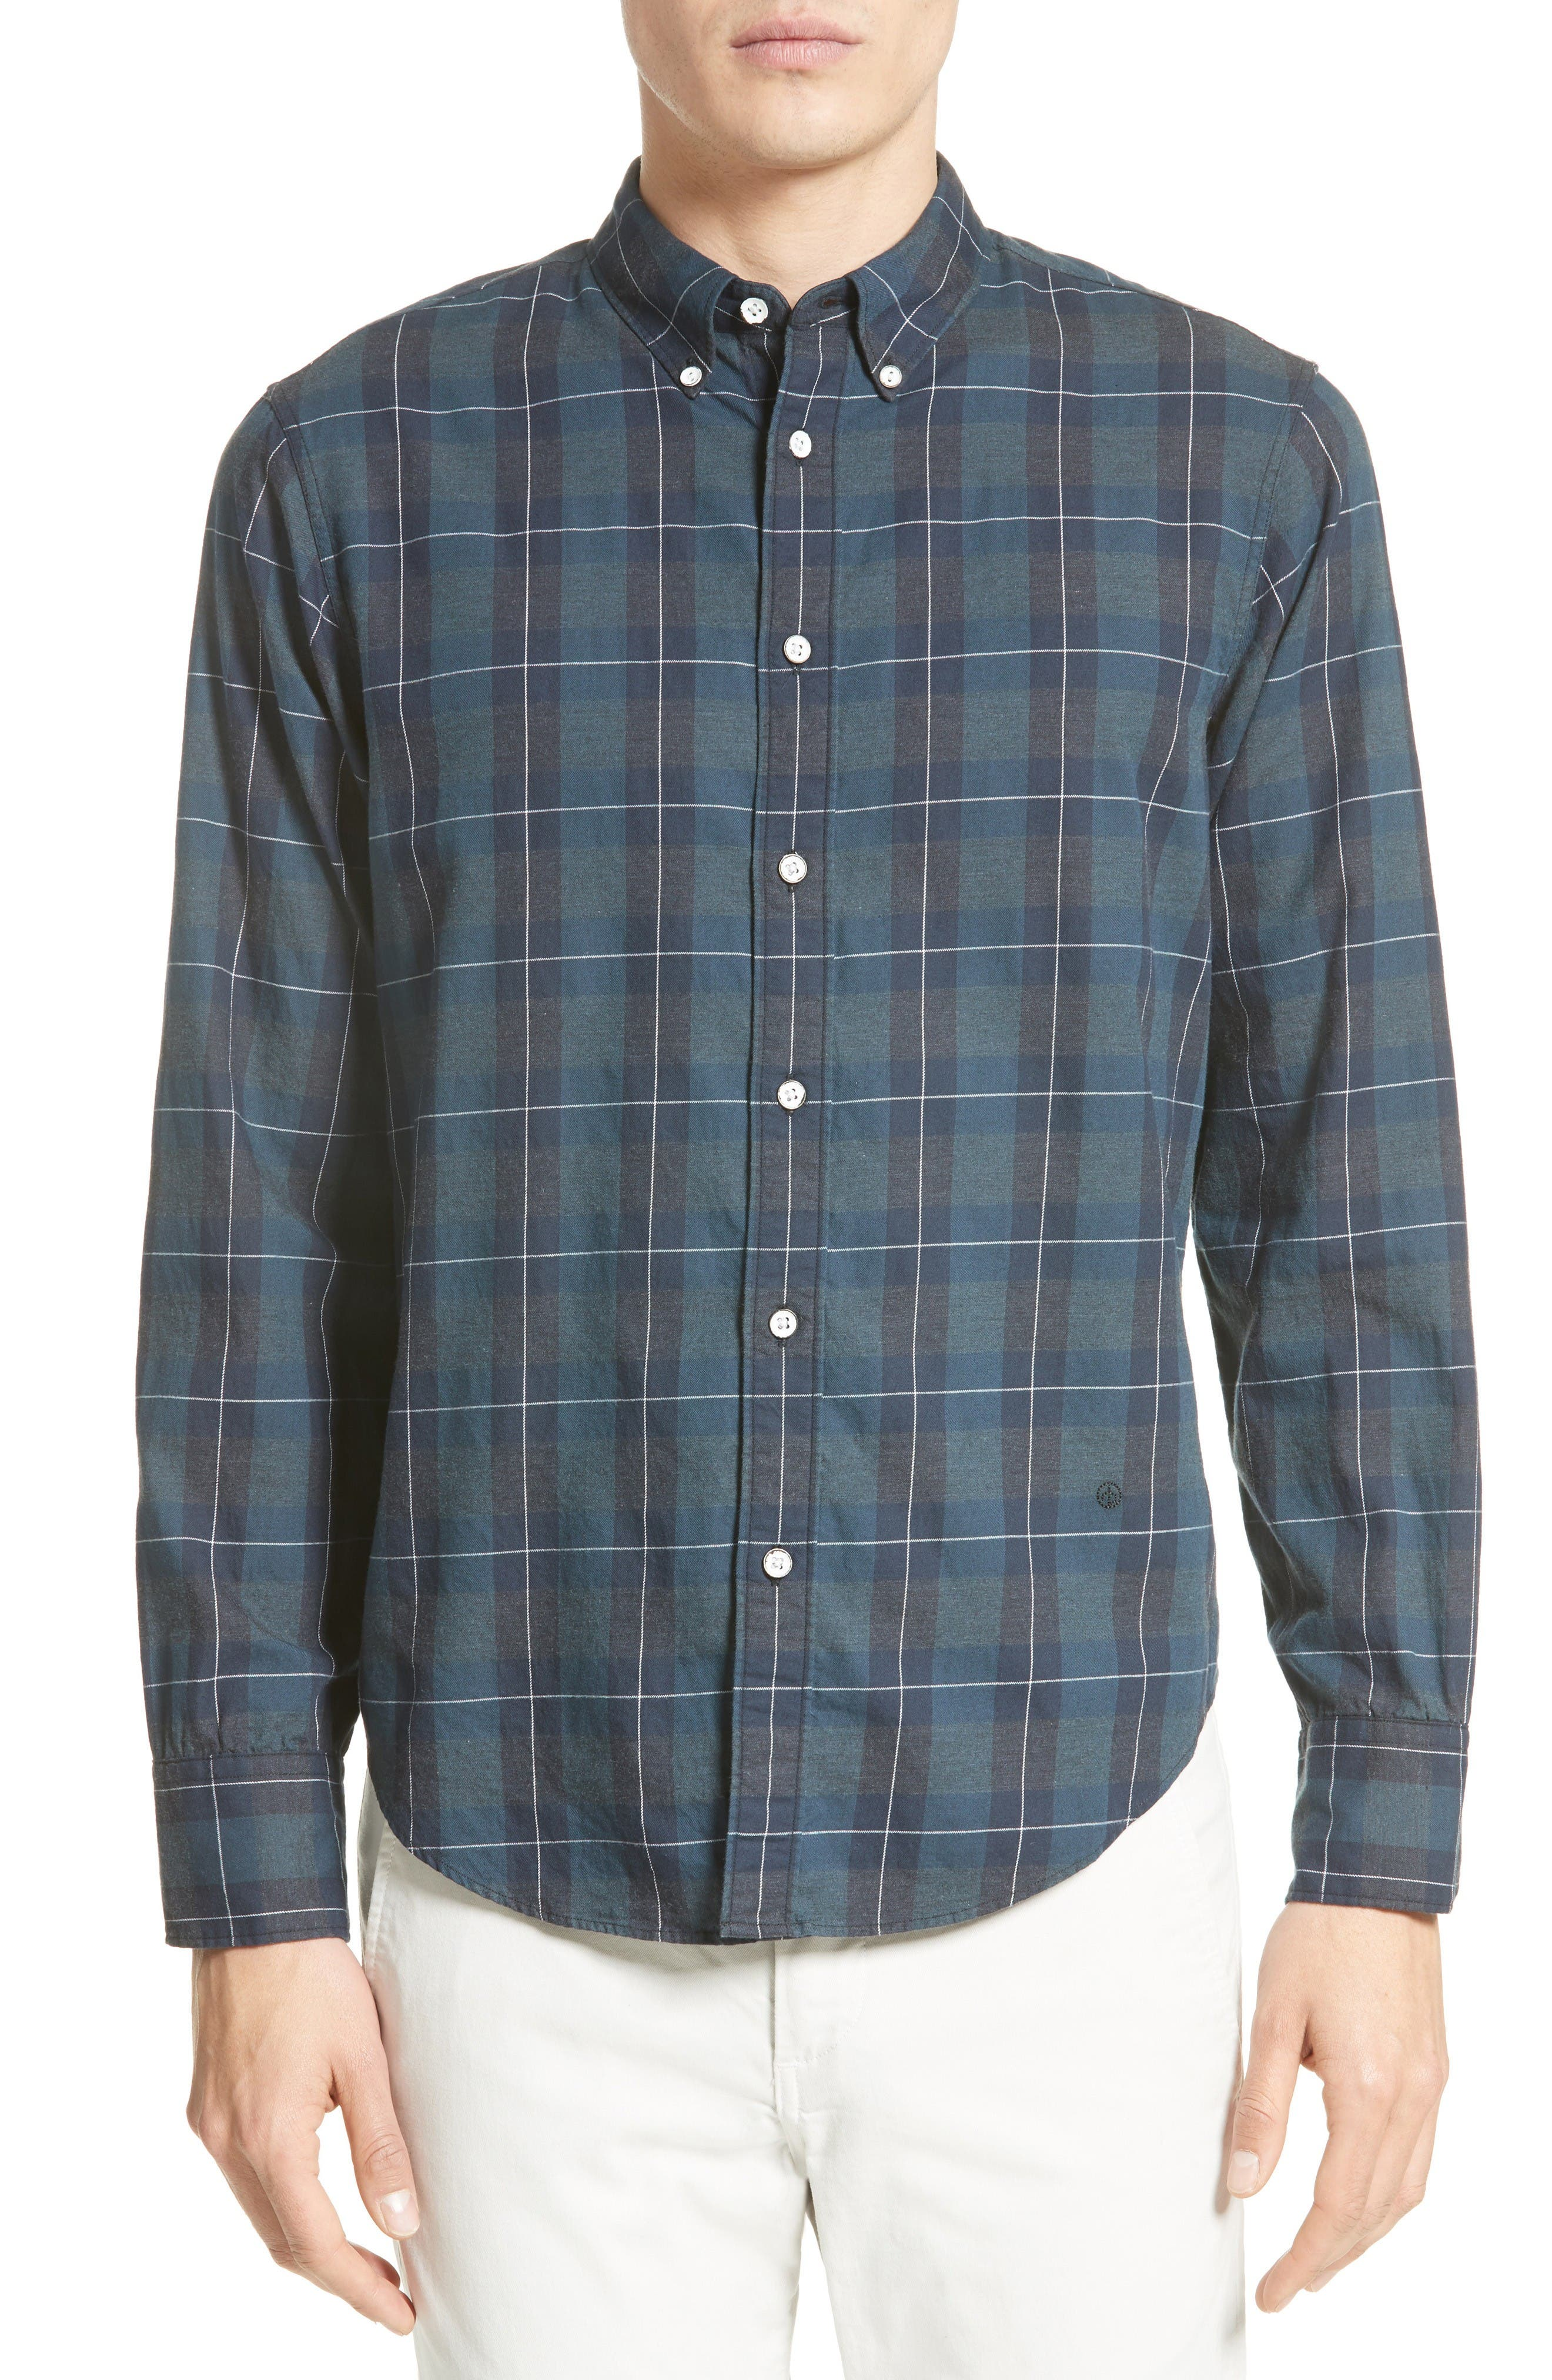 Tomlin Plaid Sport Shirt,                         Main,                         color, Navy Multi